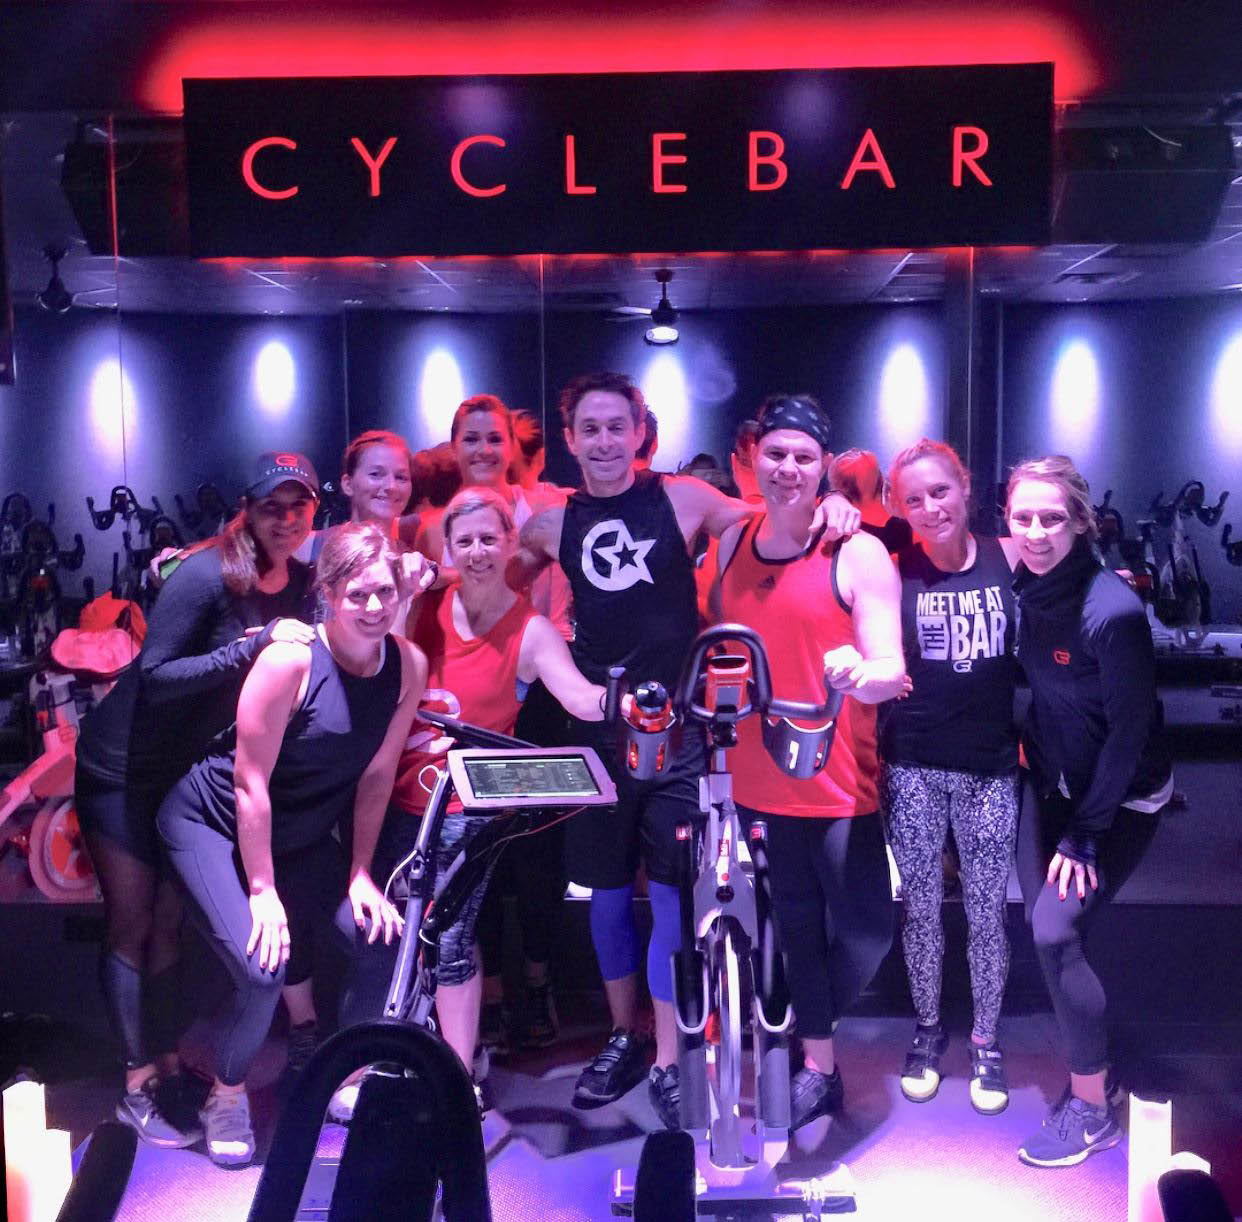 Spin classes at CycleBar